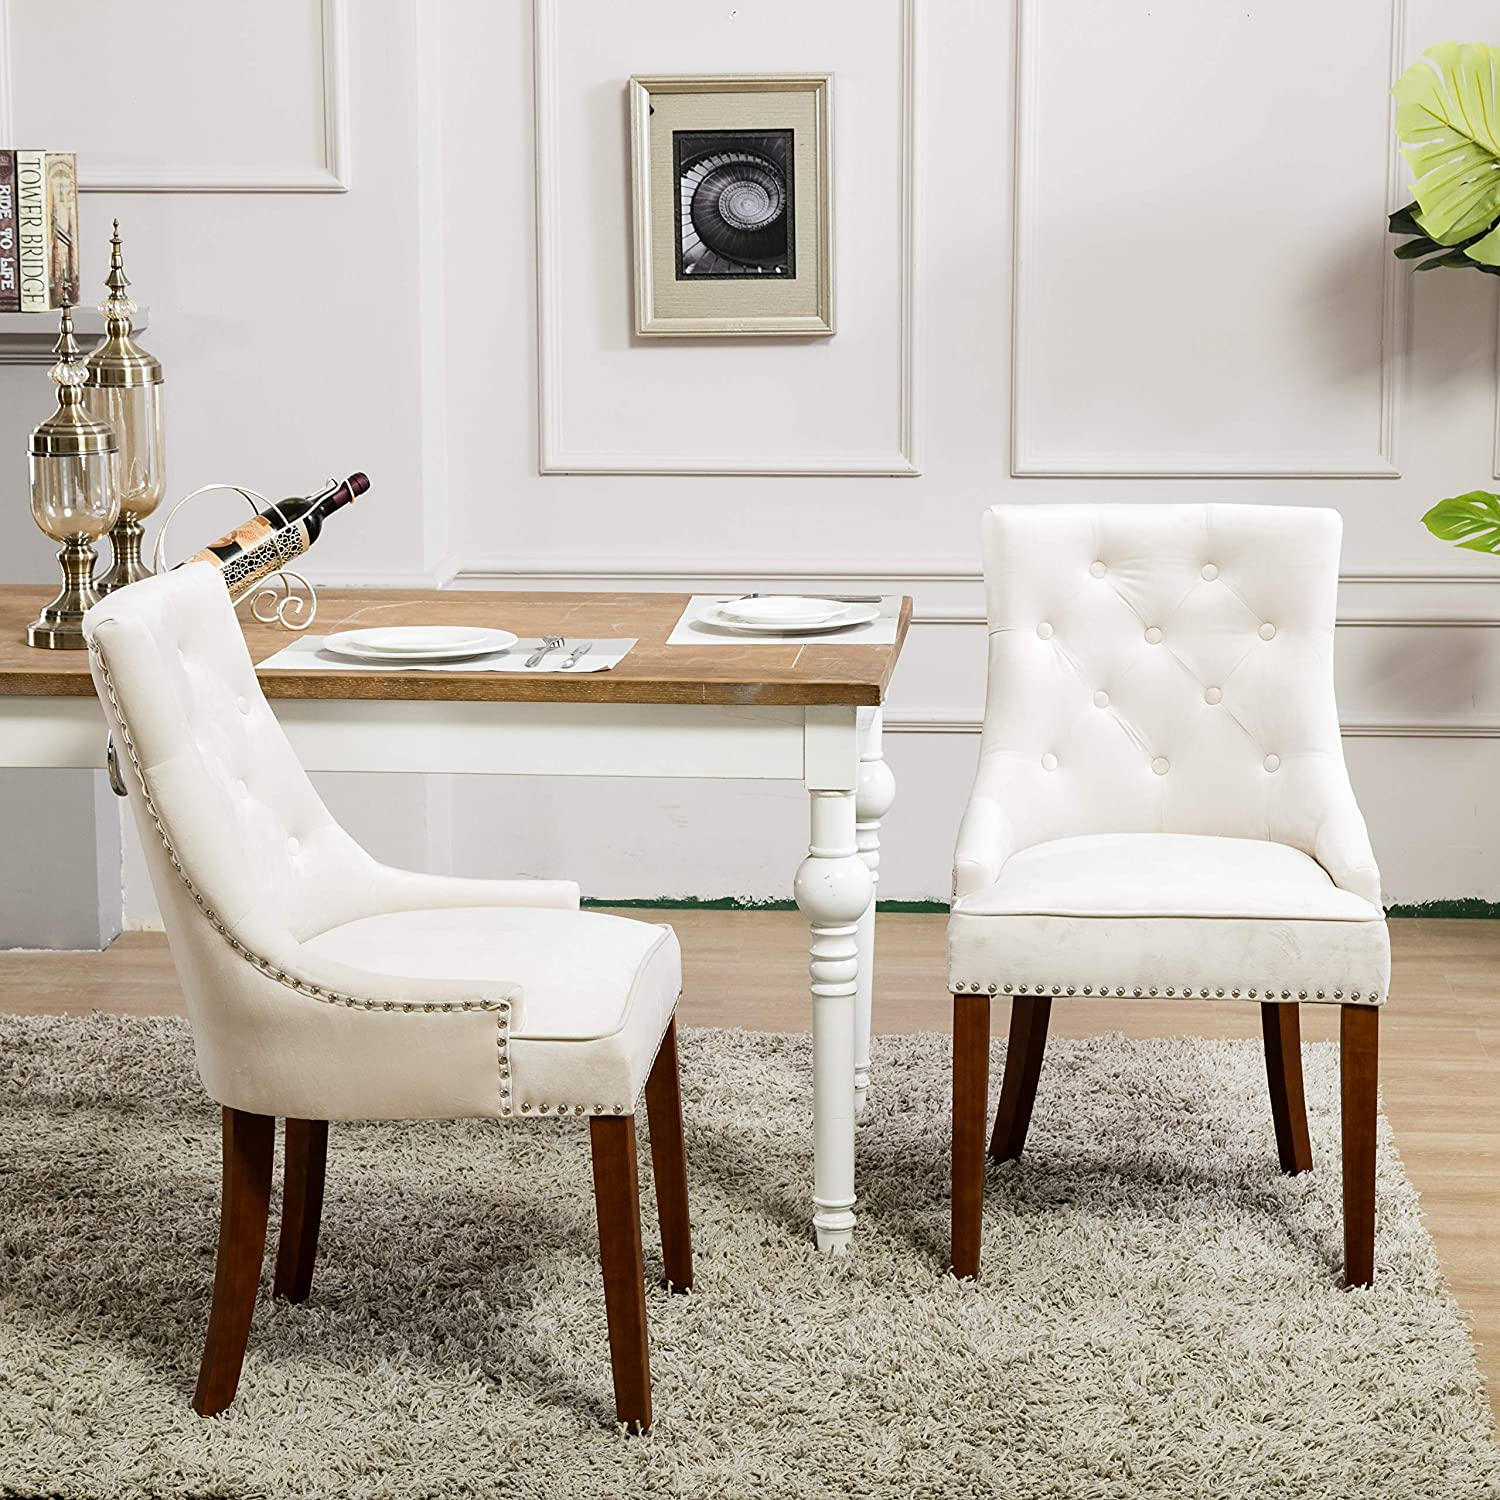 Blue Velvet Fabric Dining Chairs,Tufted Upholstered Kitchen and Dining Room Chair with Nailhead Set of 2